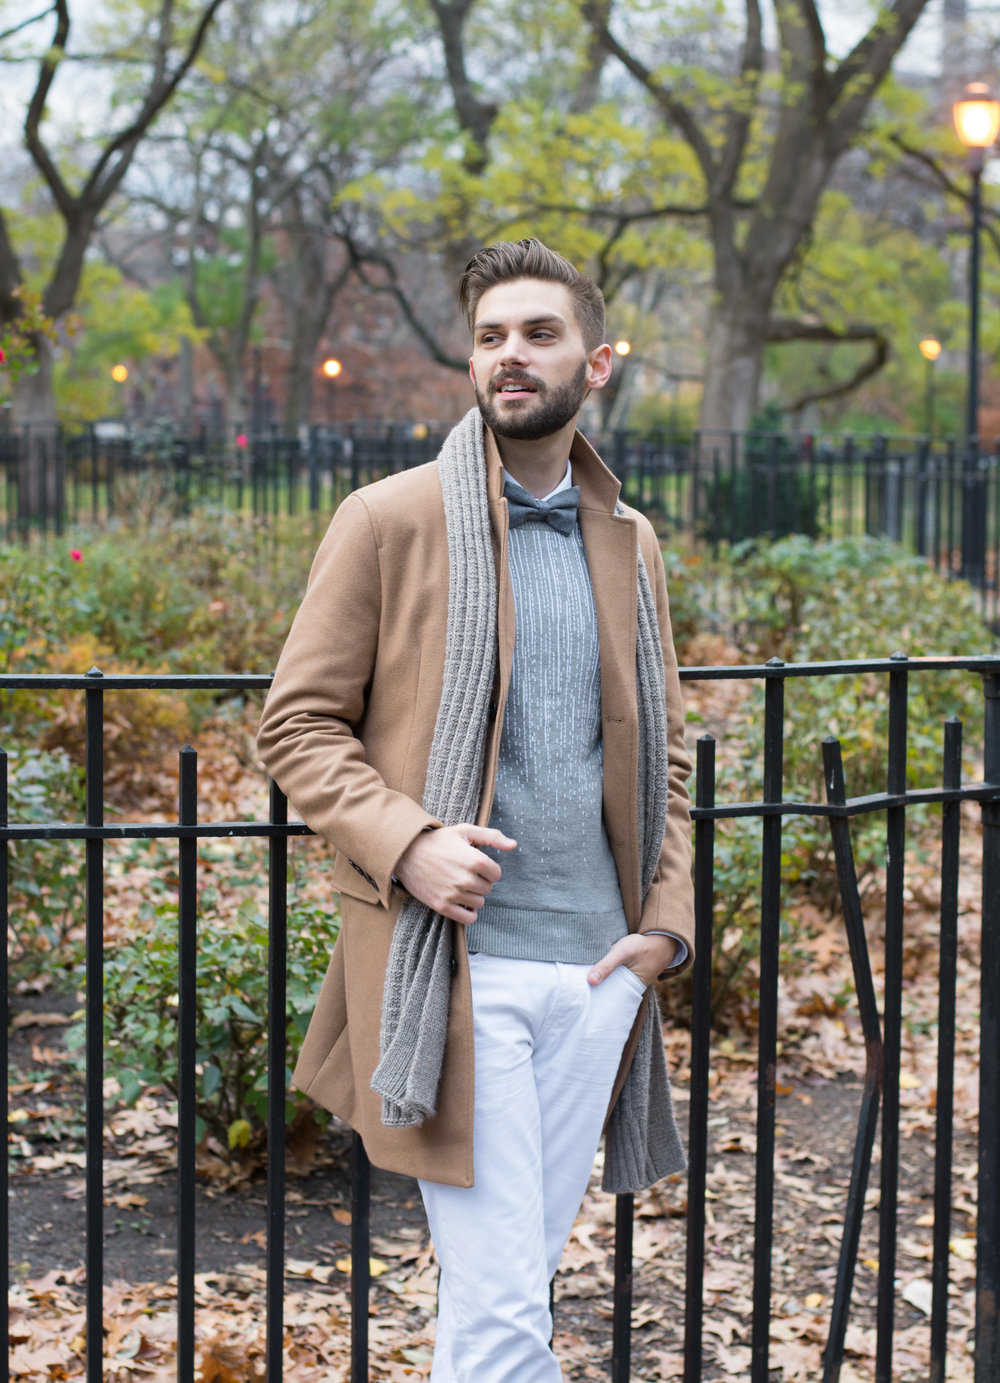 Winter White Denim | INC x The Modern Otter